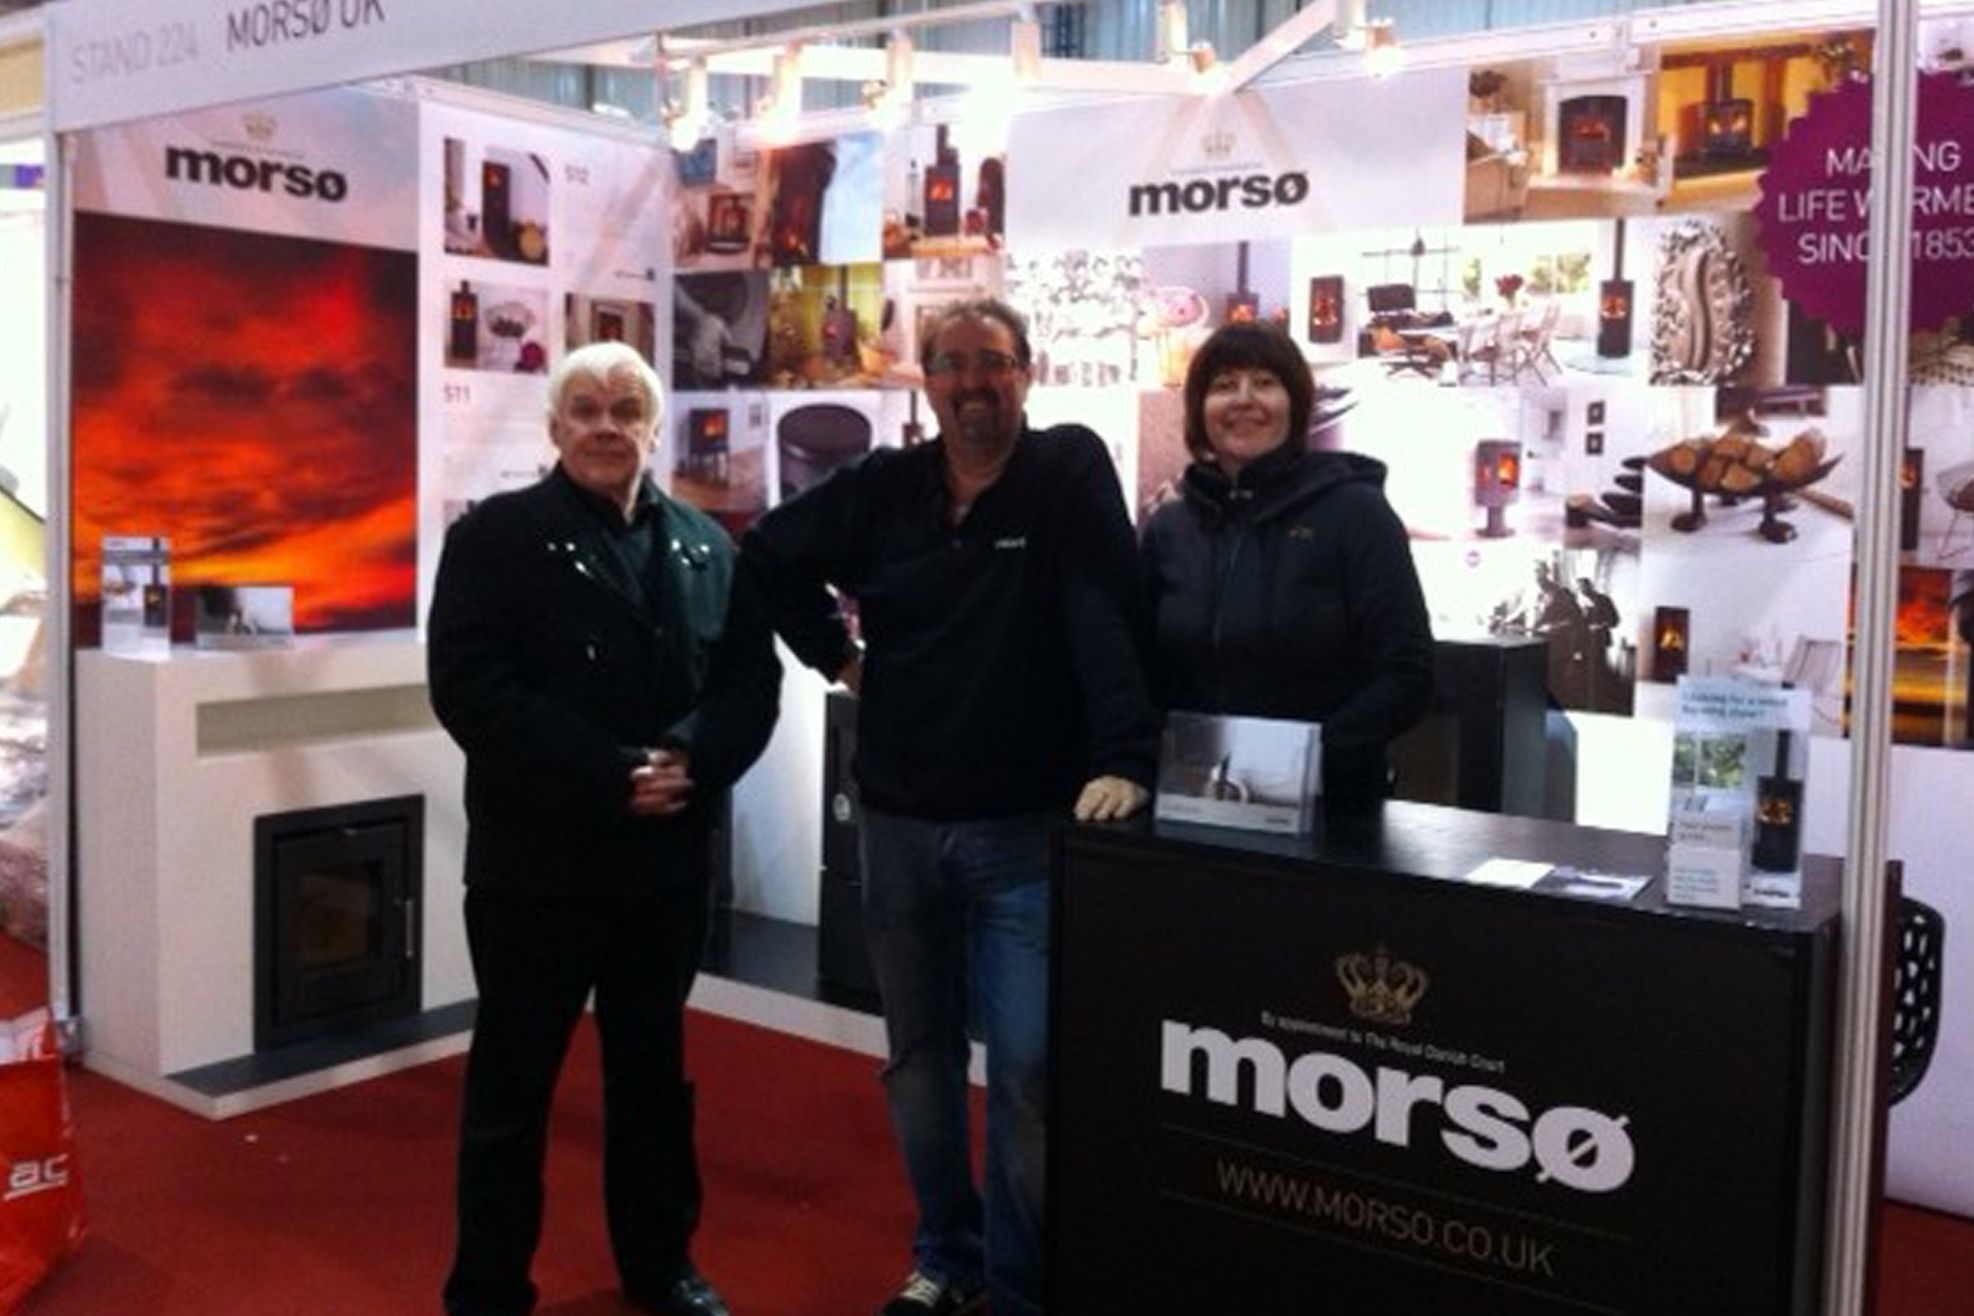 MORSØ at the Northern Homebuilding Show 8